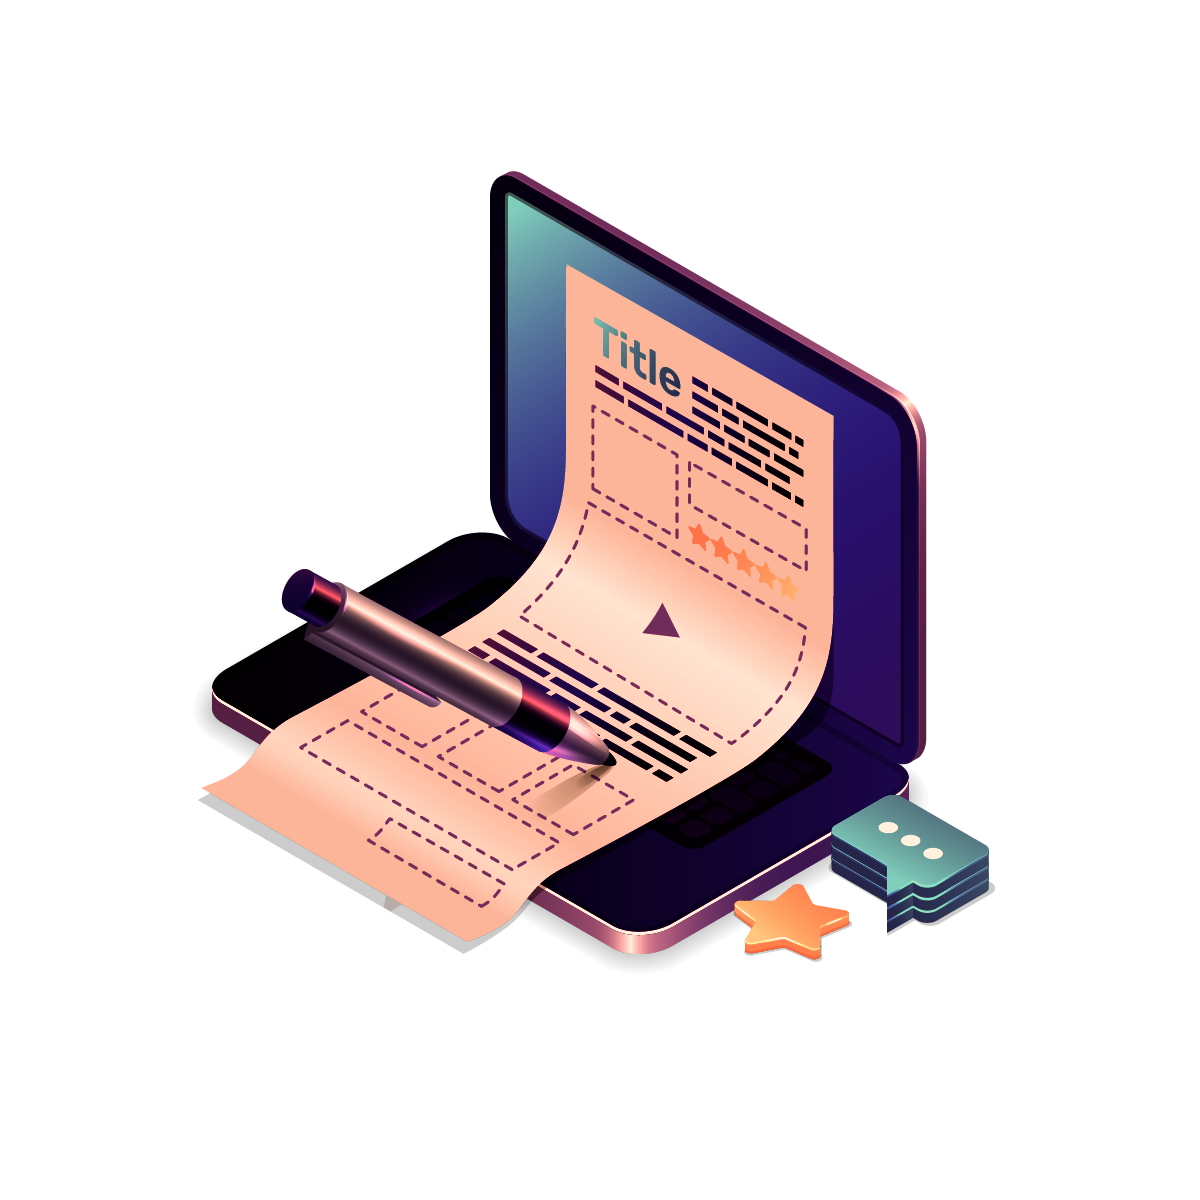 —Pngtree—quality content production isometric isolated_5317156